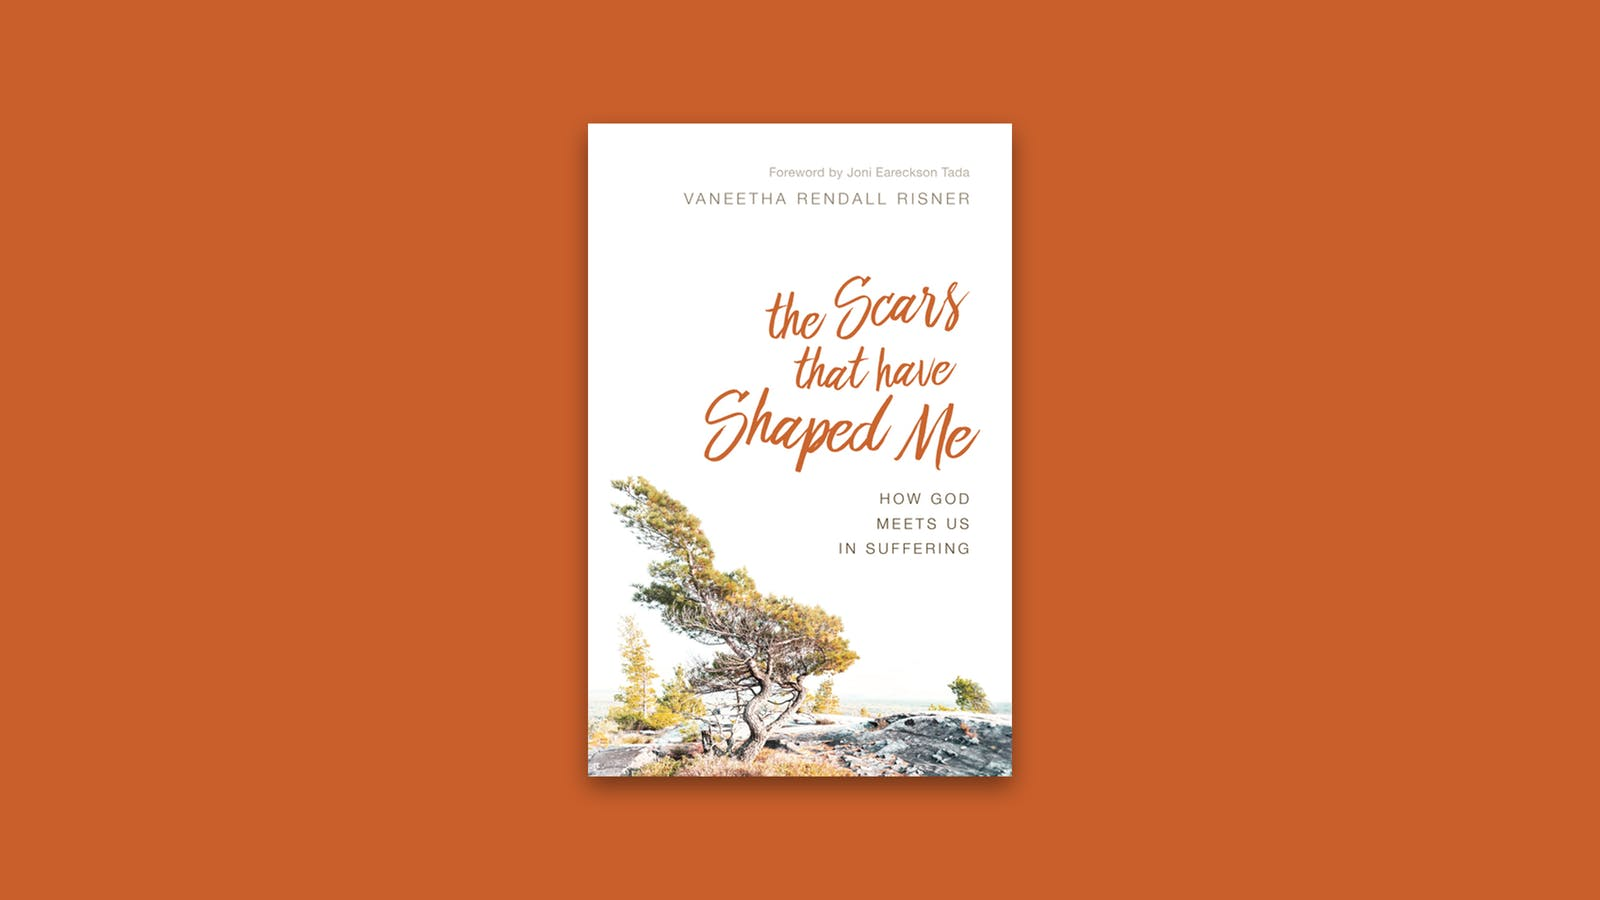 Free ebook the scars that have shaped me desiring god editors note over the weekend of september 12 desiring god offered the scars that have shaped me free of charge in three digital formats pdf mobi fandeluxe Choice Image